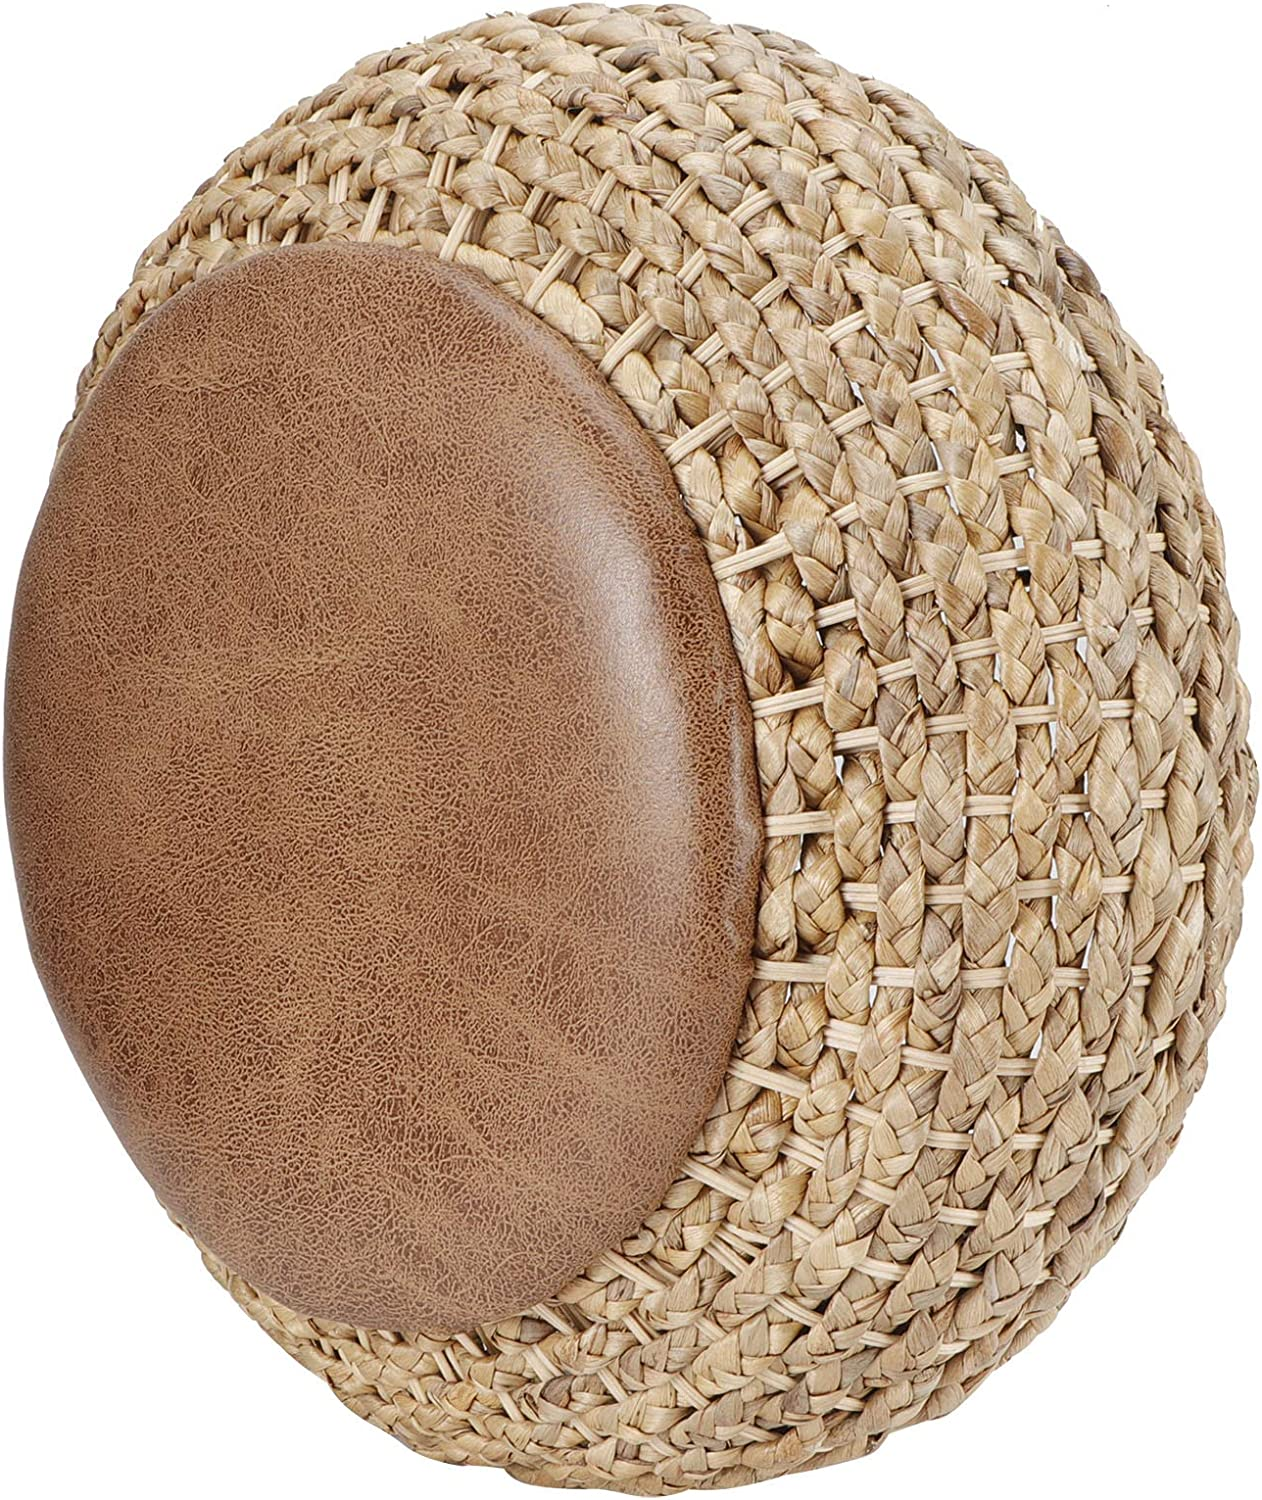 FOLOSAFENAR Round Japanese-Style At the price Cushion 1 year warranty Tatami Pouf Comfortable